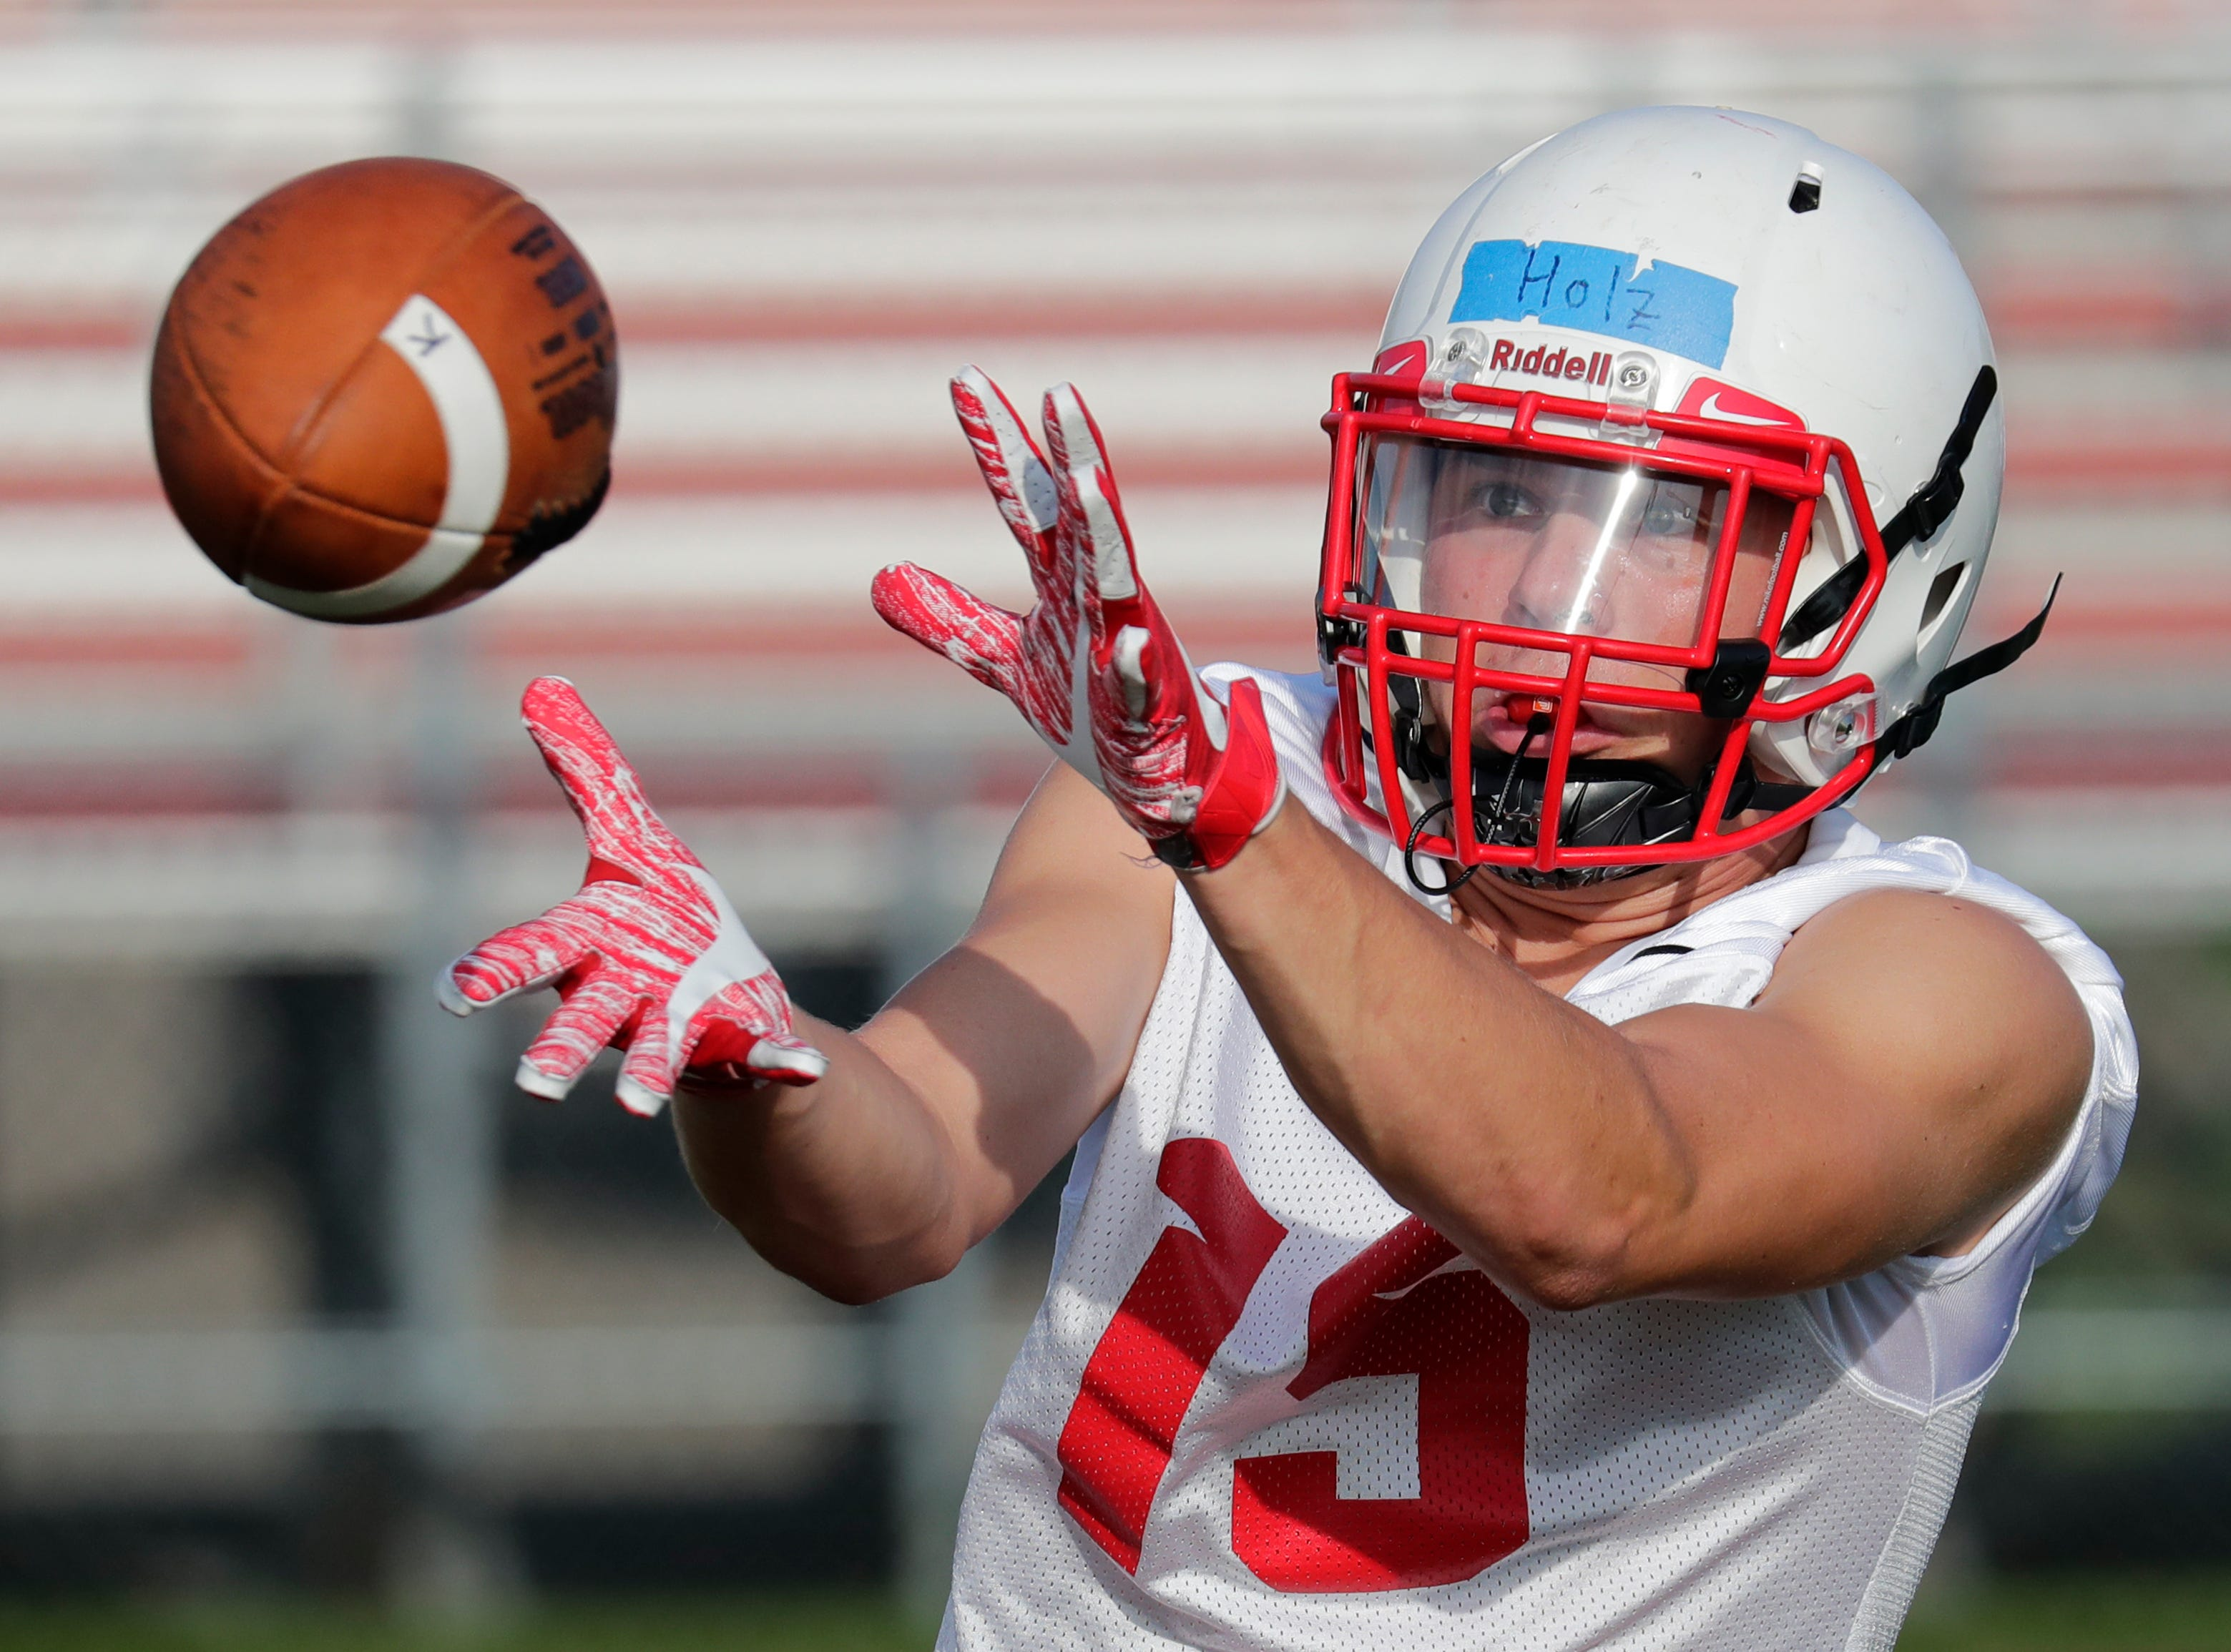 Trenton Holz pulls down a reception during the Kimberly High School football practice Wednesday, August 1, 2018, at Papermaker Stadium in Kimberly, Wis. 